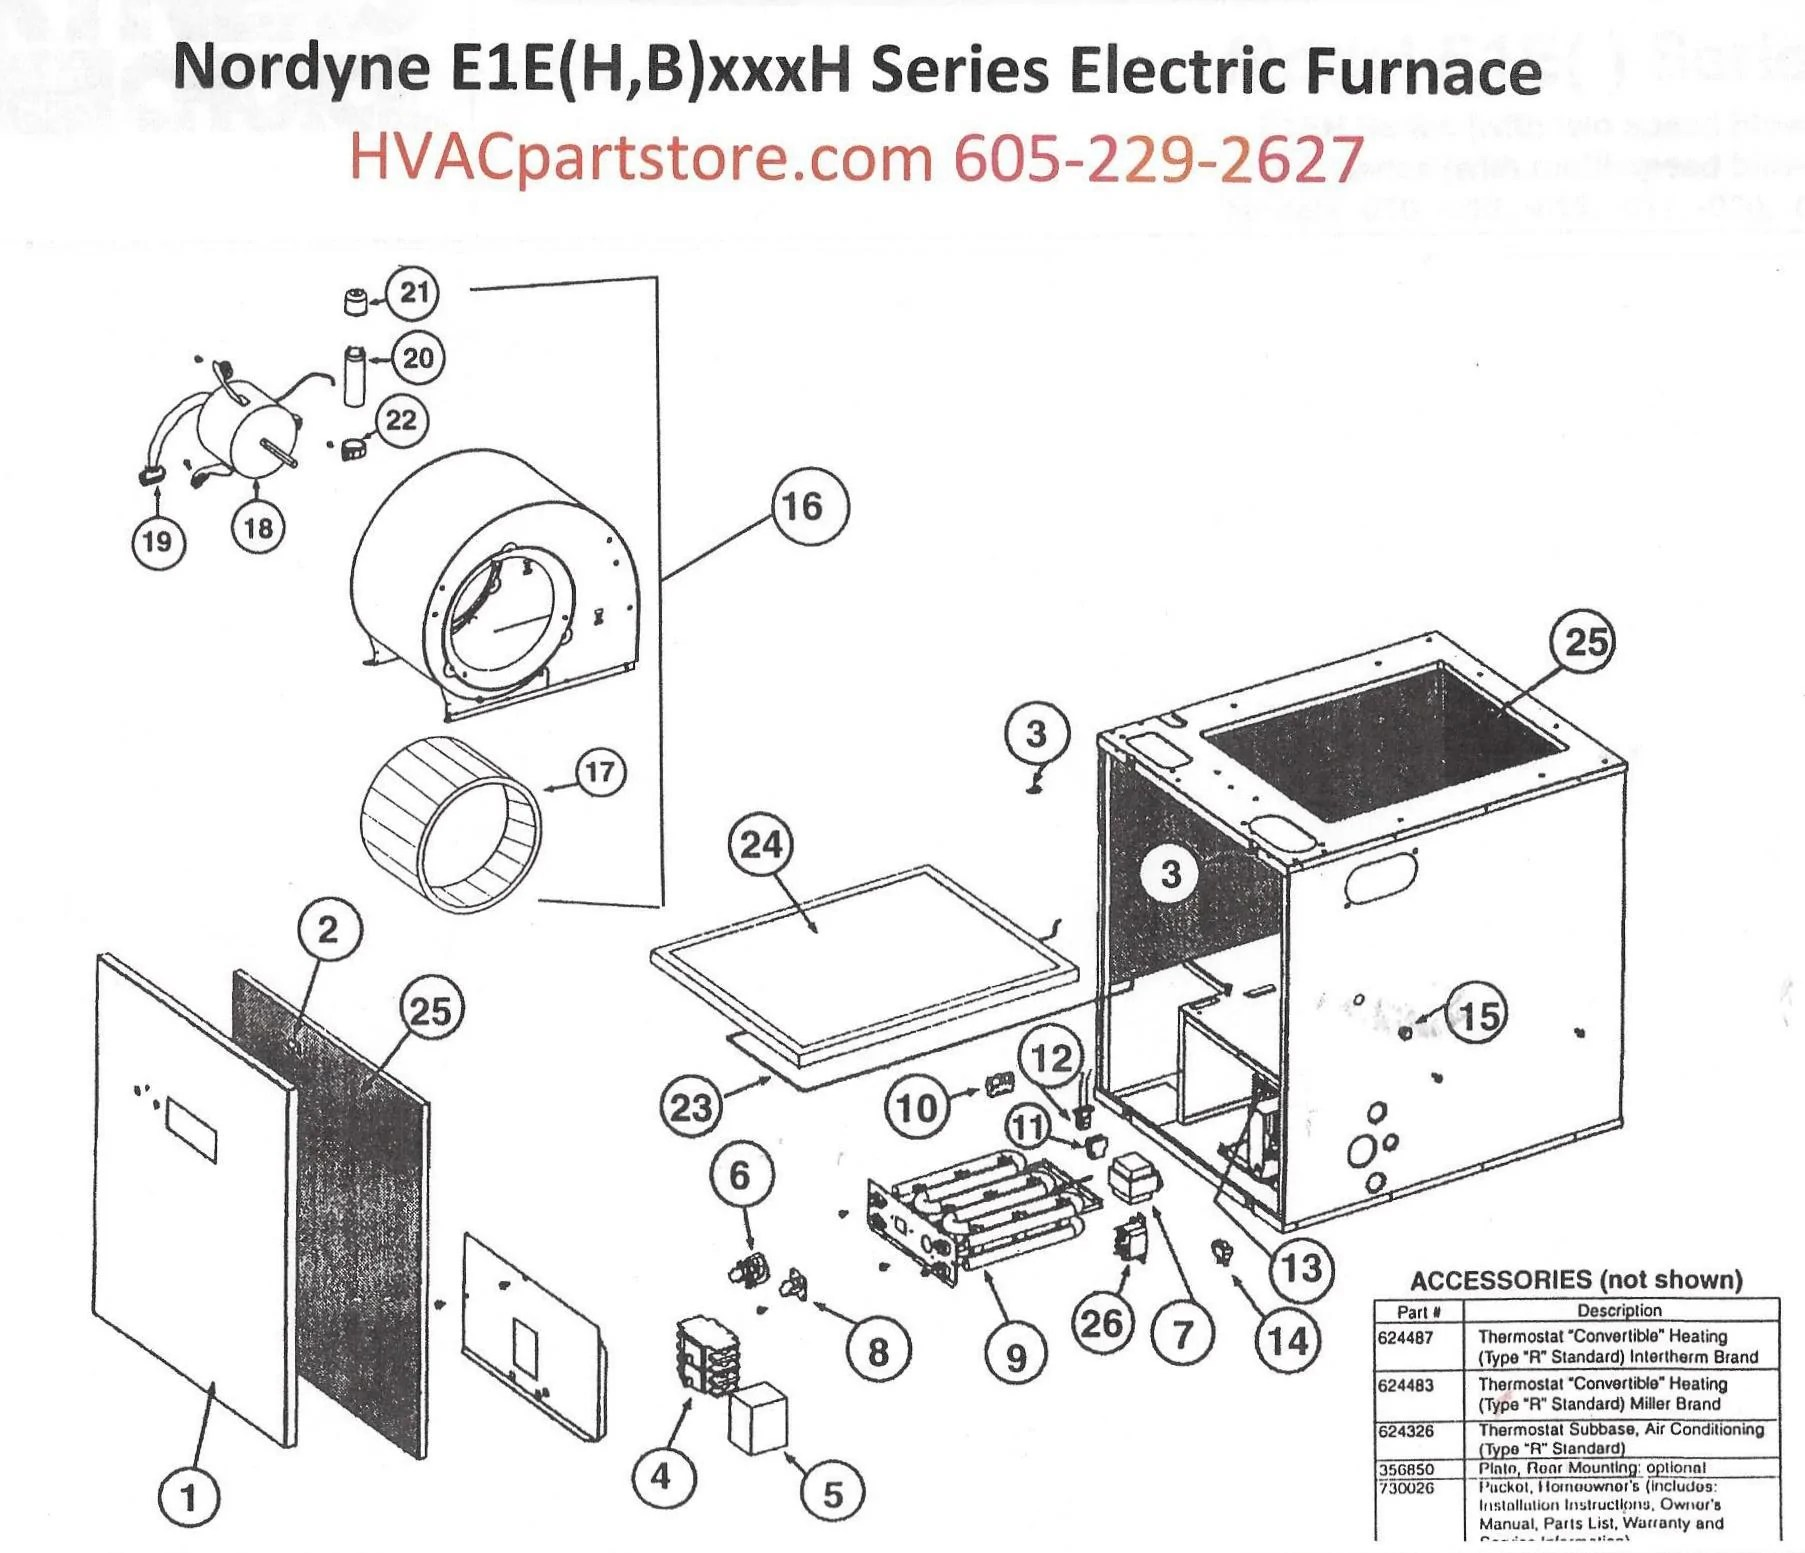 E1EH015H Nordyne Electric Furnace Parts – HVACpartstore